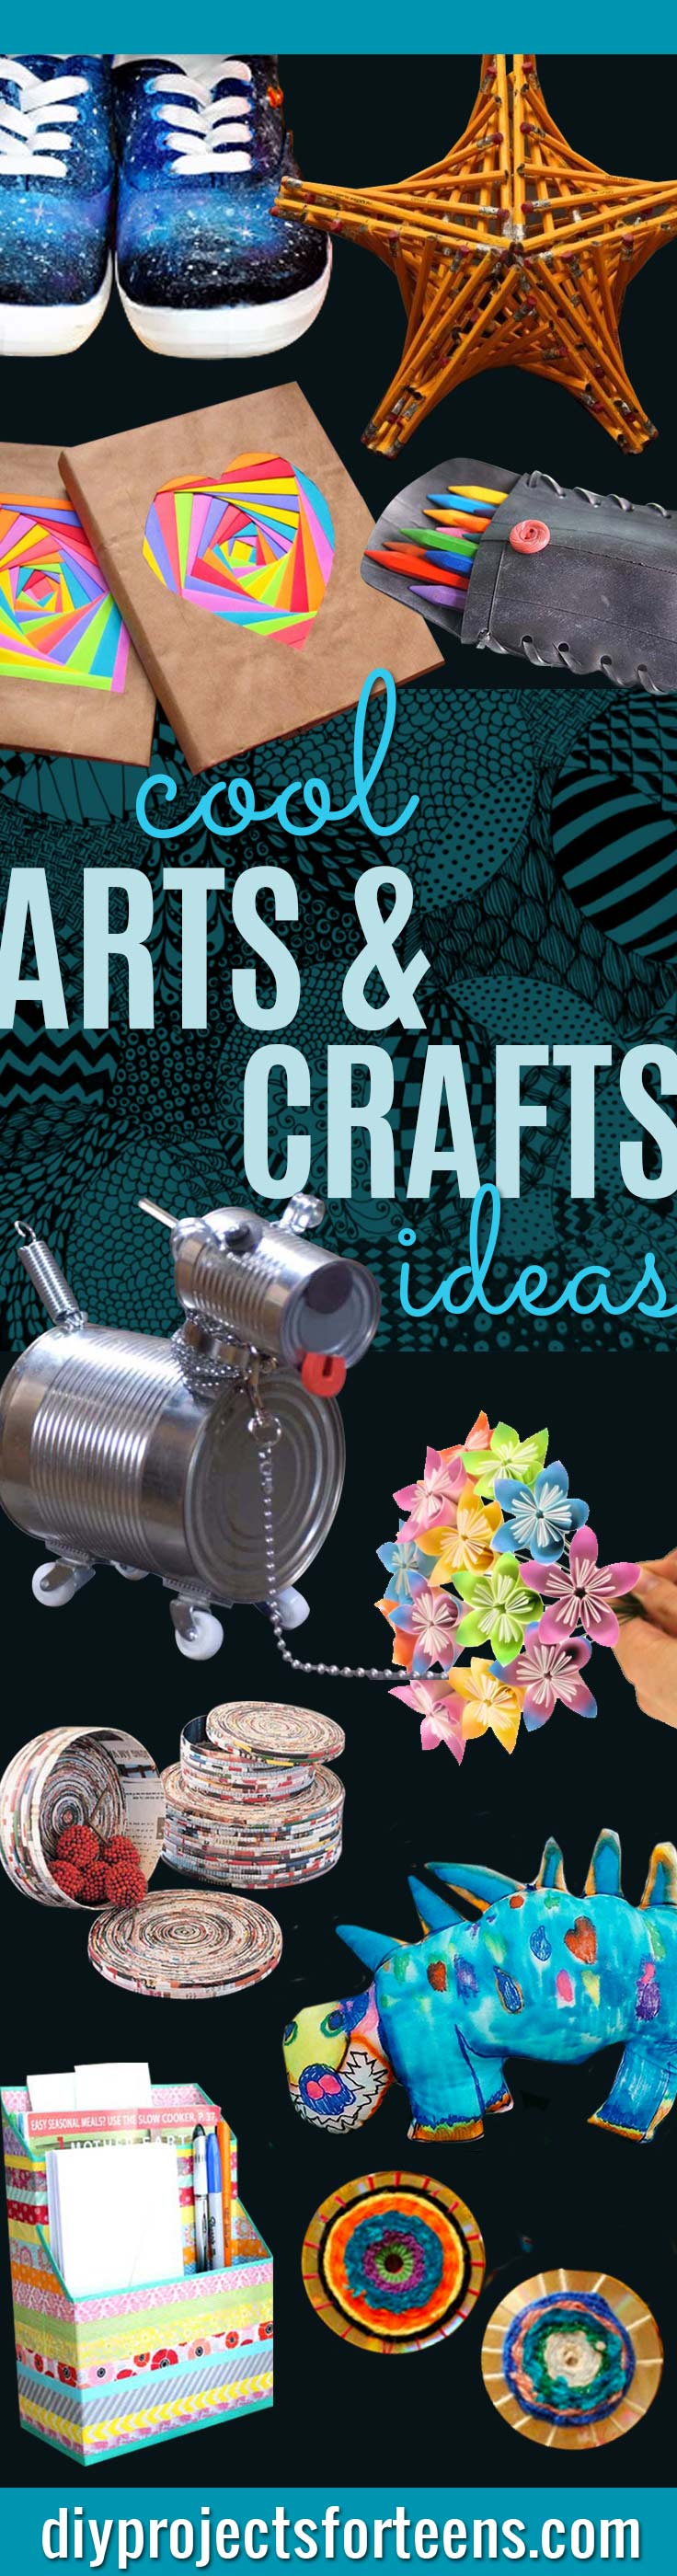 28 Cool Arts and Crafts Ideas for Teens